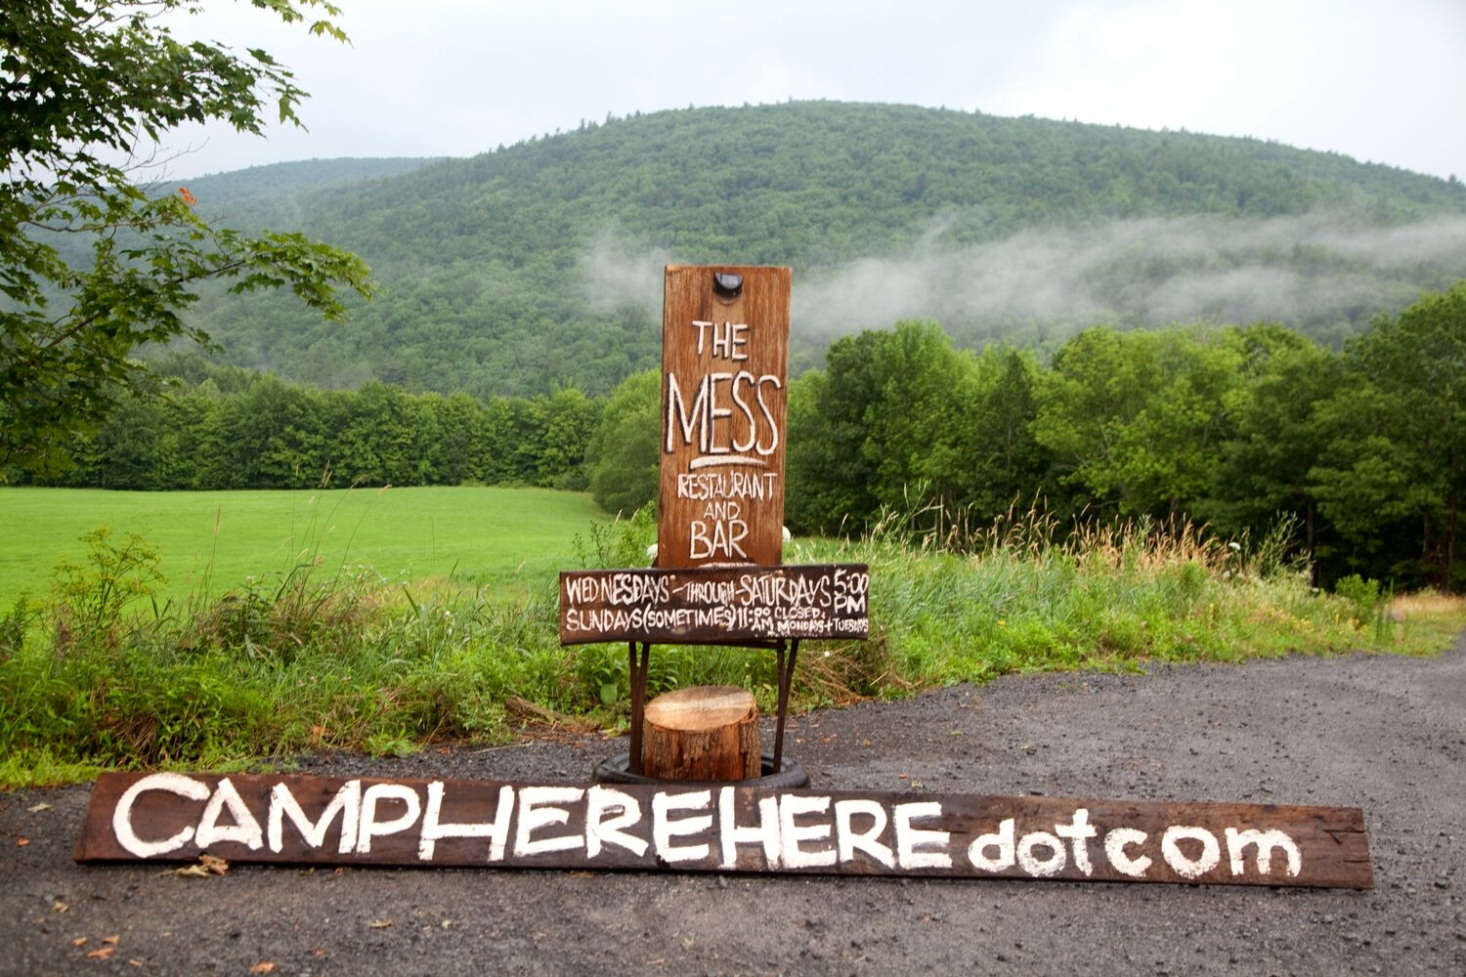 Here Here is in the hamlet of West Fulton in the far northern foothills of the Catskill Mountains, approximately three hours north of NYC, and home, according to the camp guide, to &#8